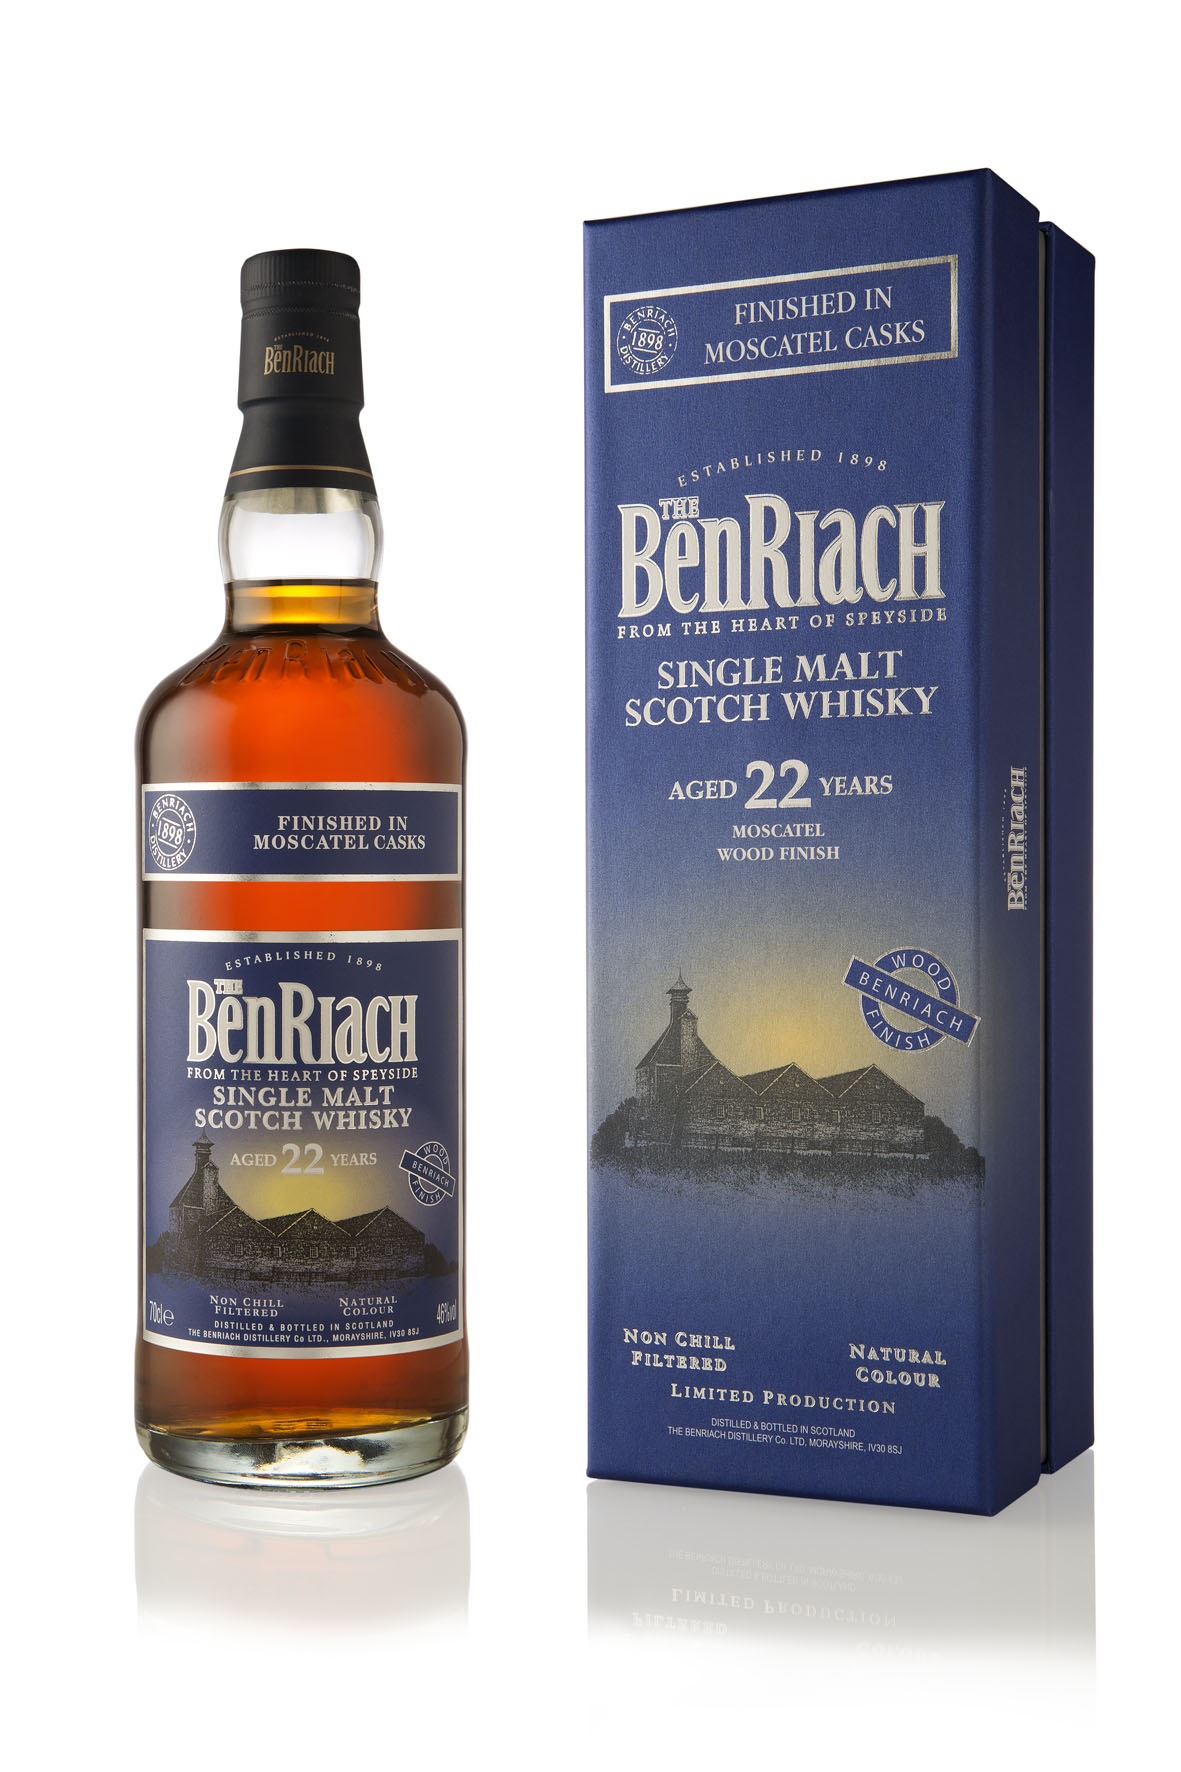 The Benriach 22 Years moscatel wood Finish